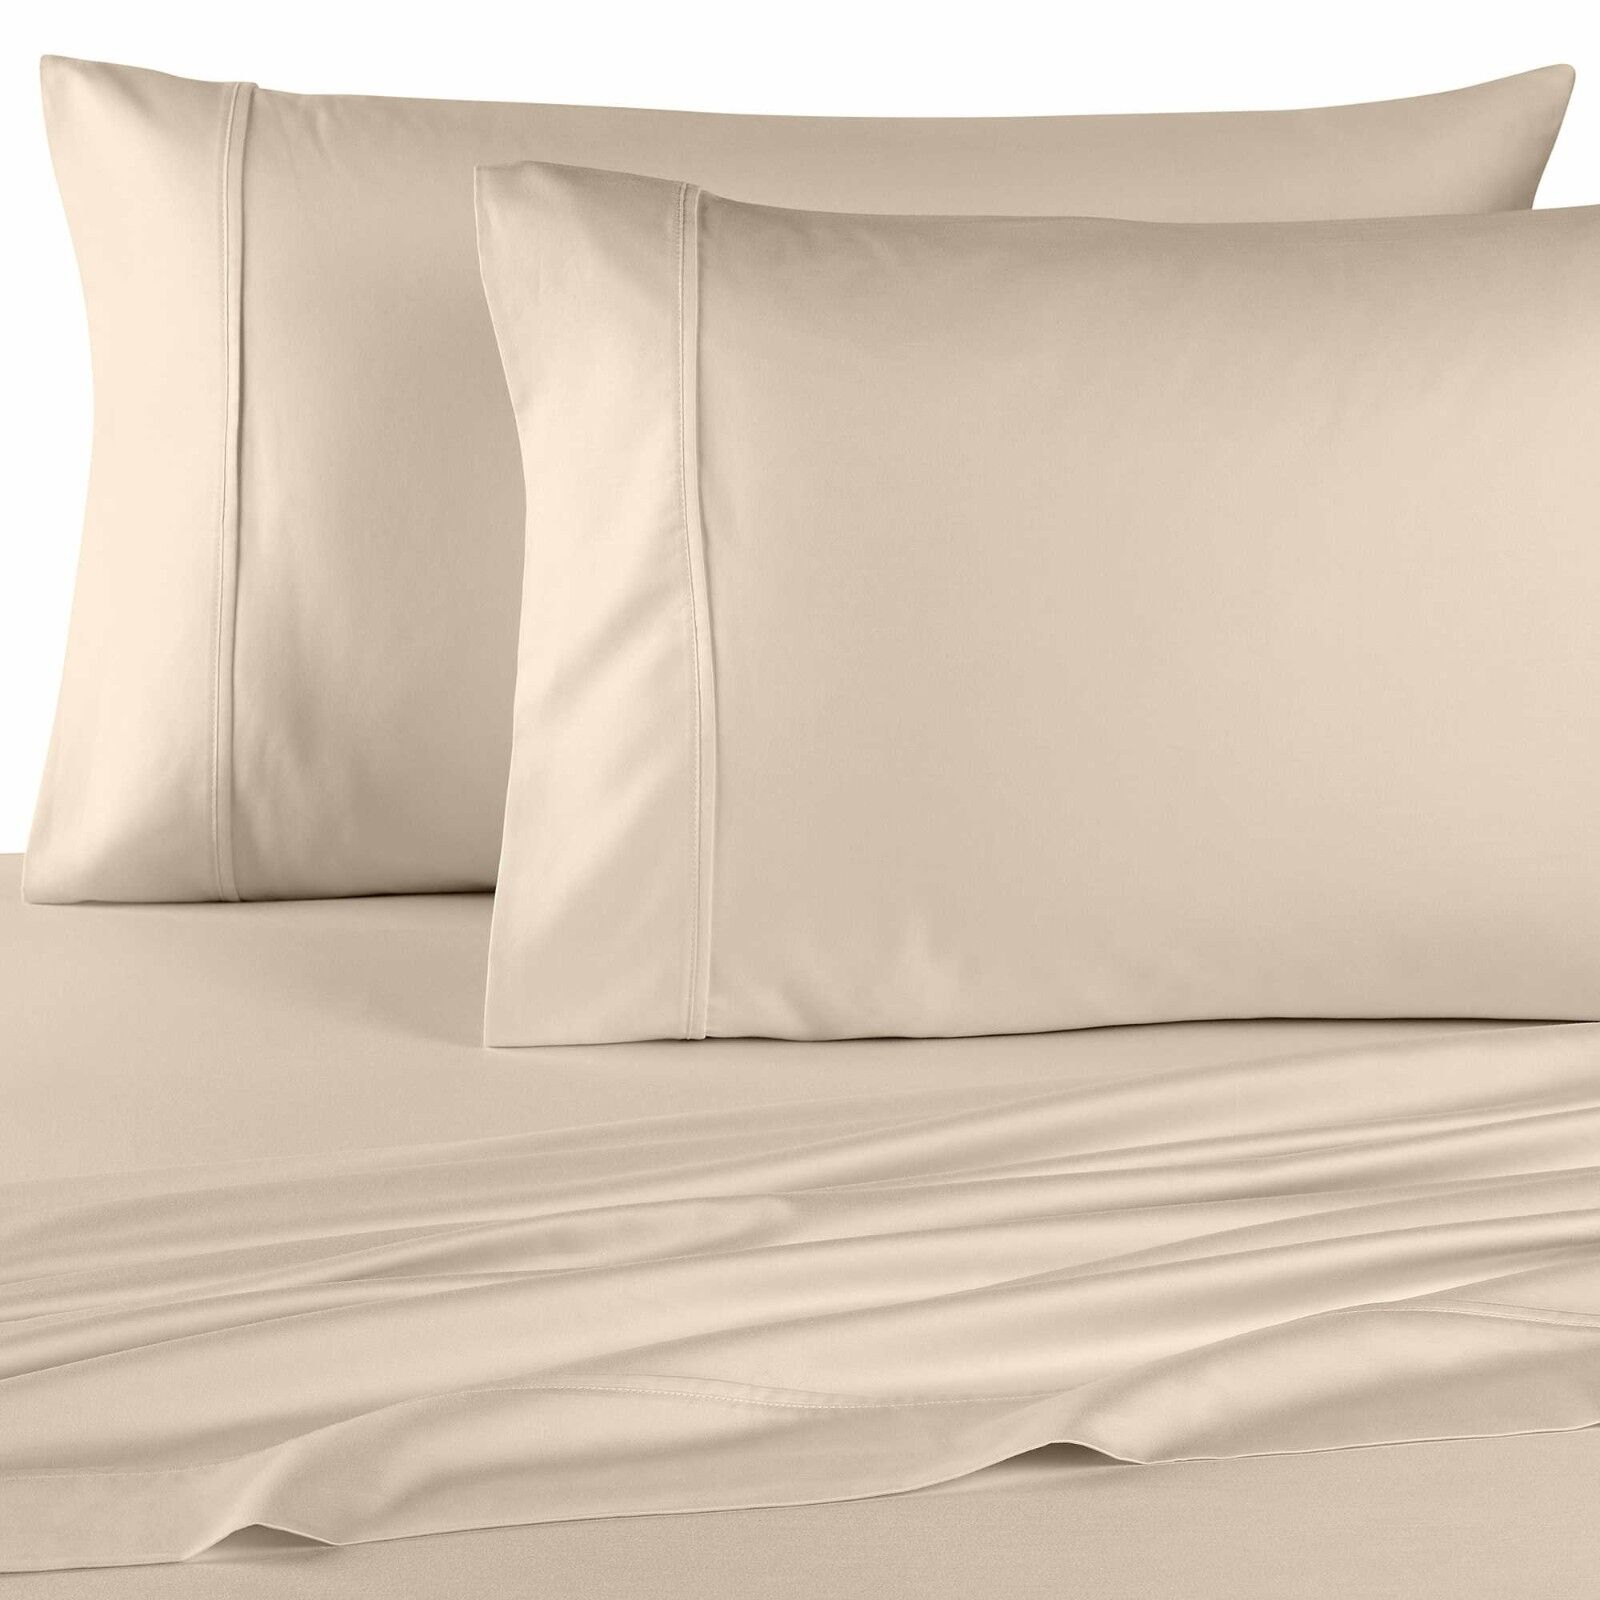 1500 Thread Count 100% Egyptian Cotton Bed Sheet Set 1500 TC TWIN XL Ivory Solid